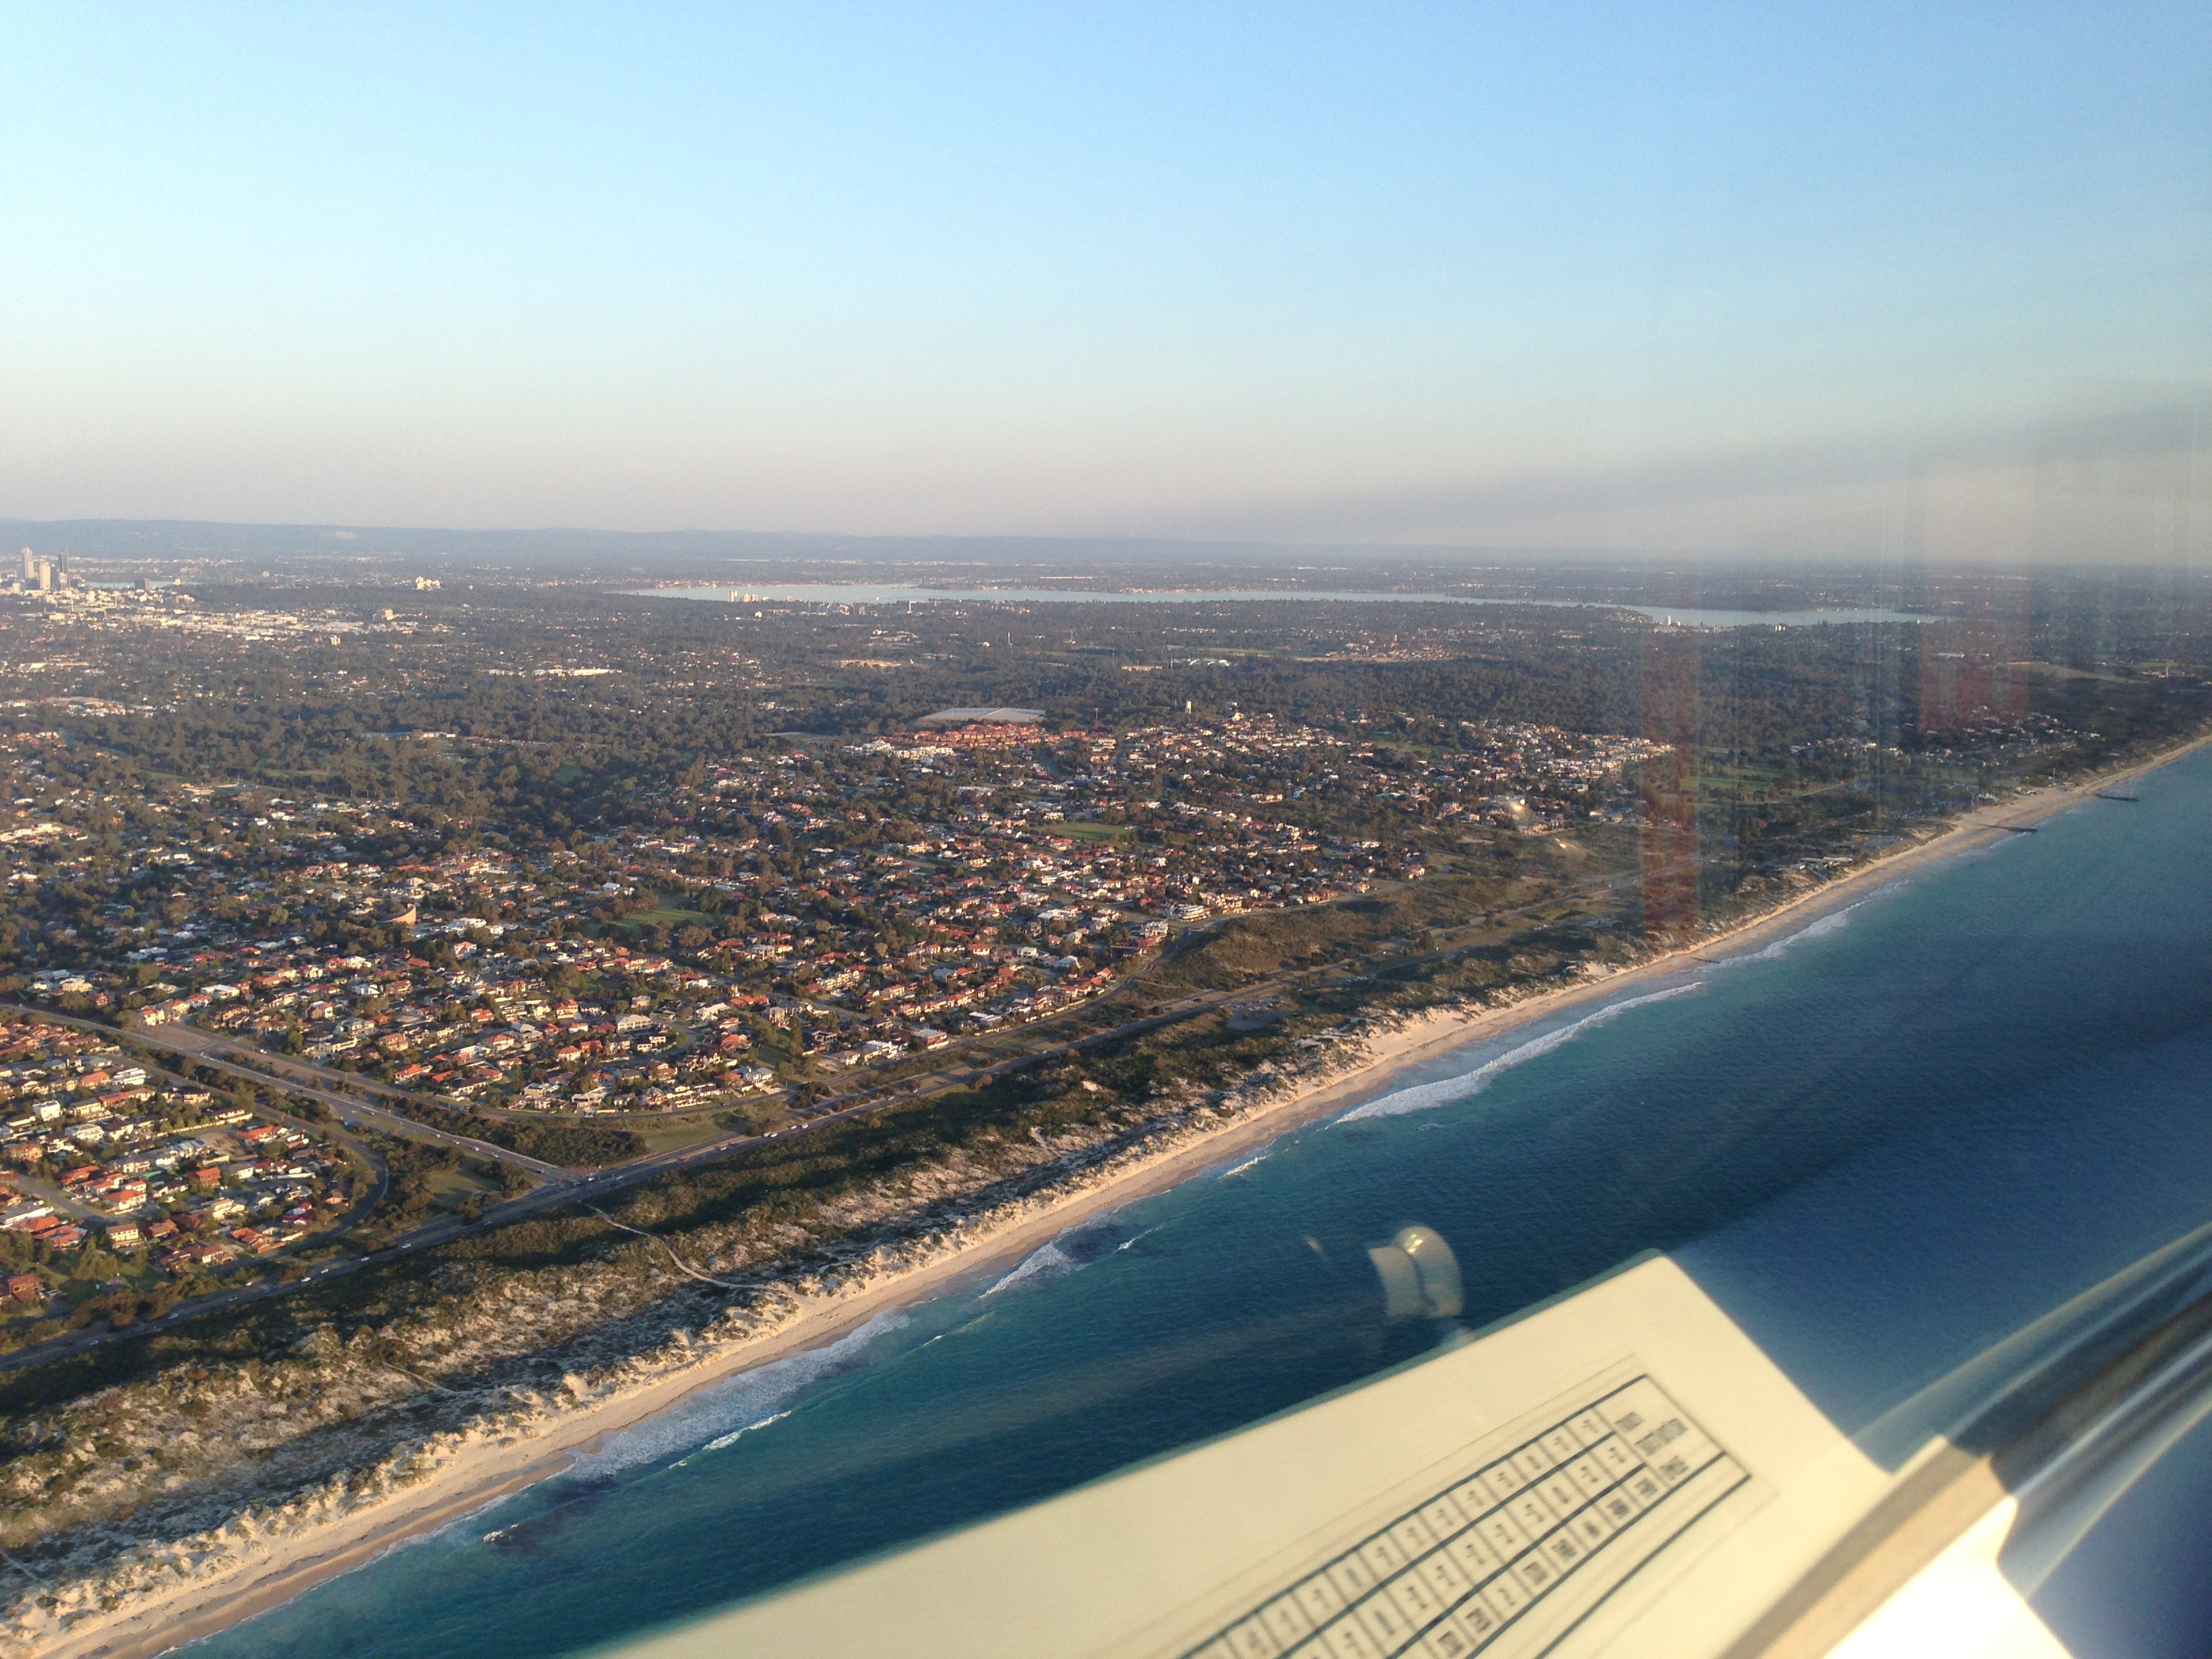 VH-EZT CSA pipersport sportscruiser perth city beaches coastline from the air